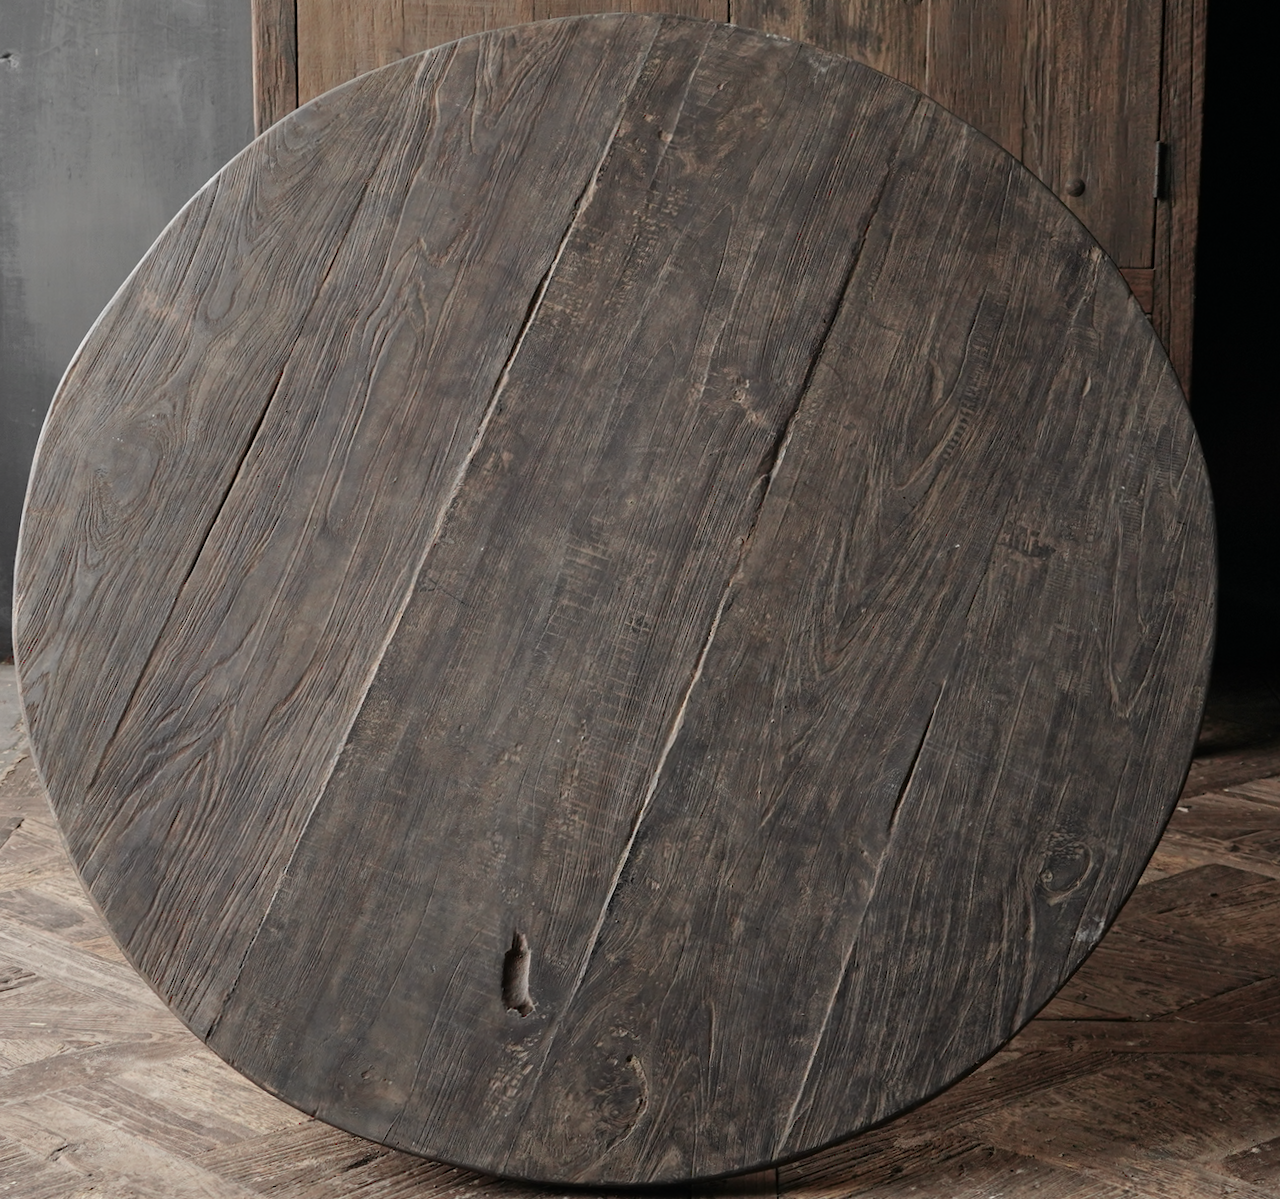 Tough Robust round table made of old used wood-6